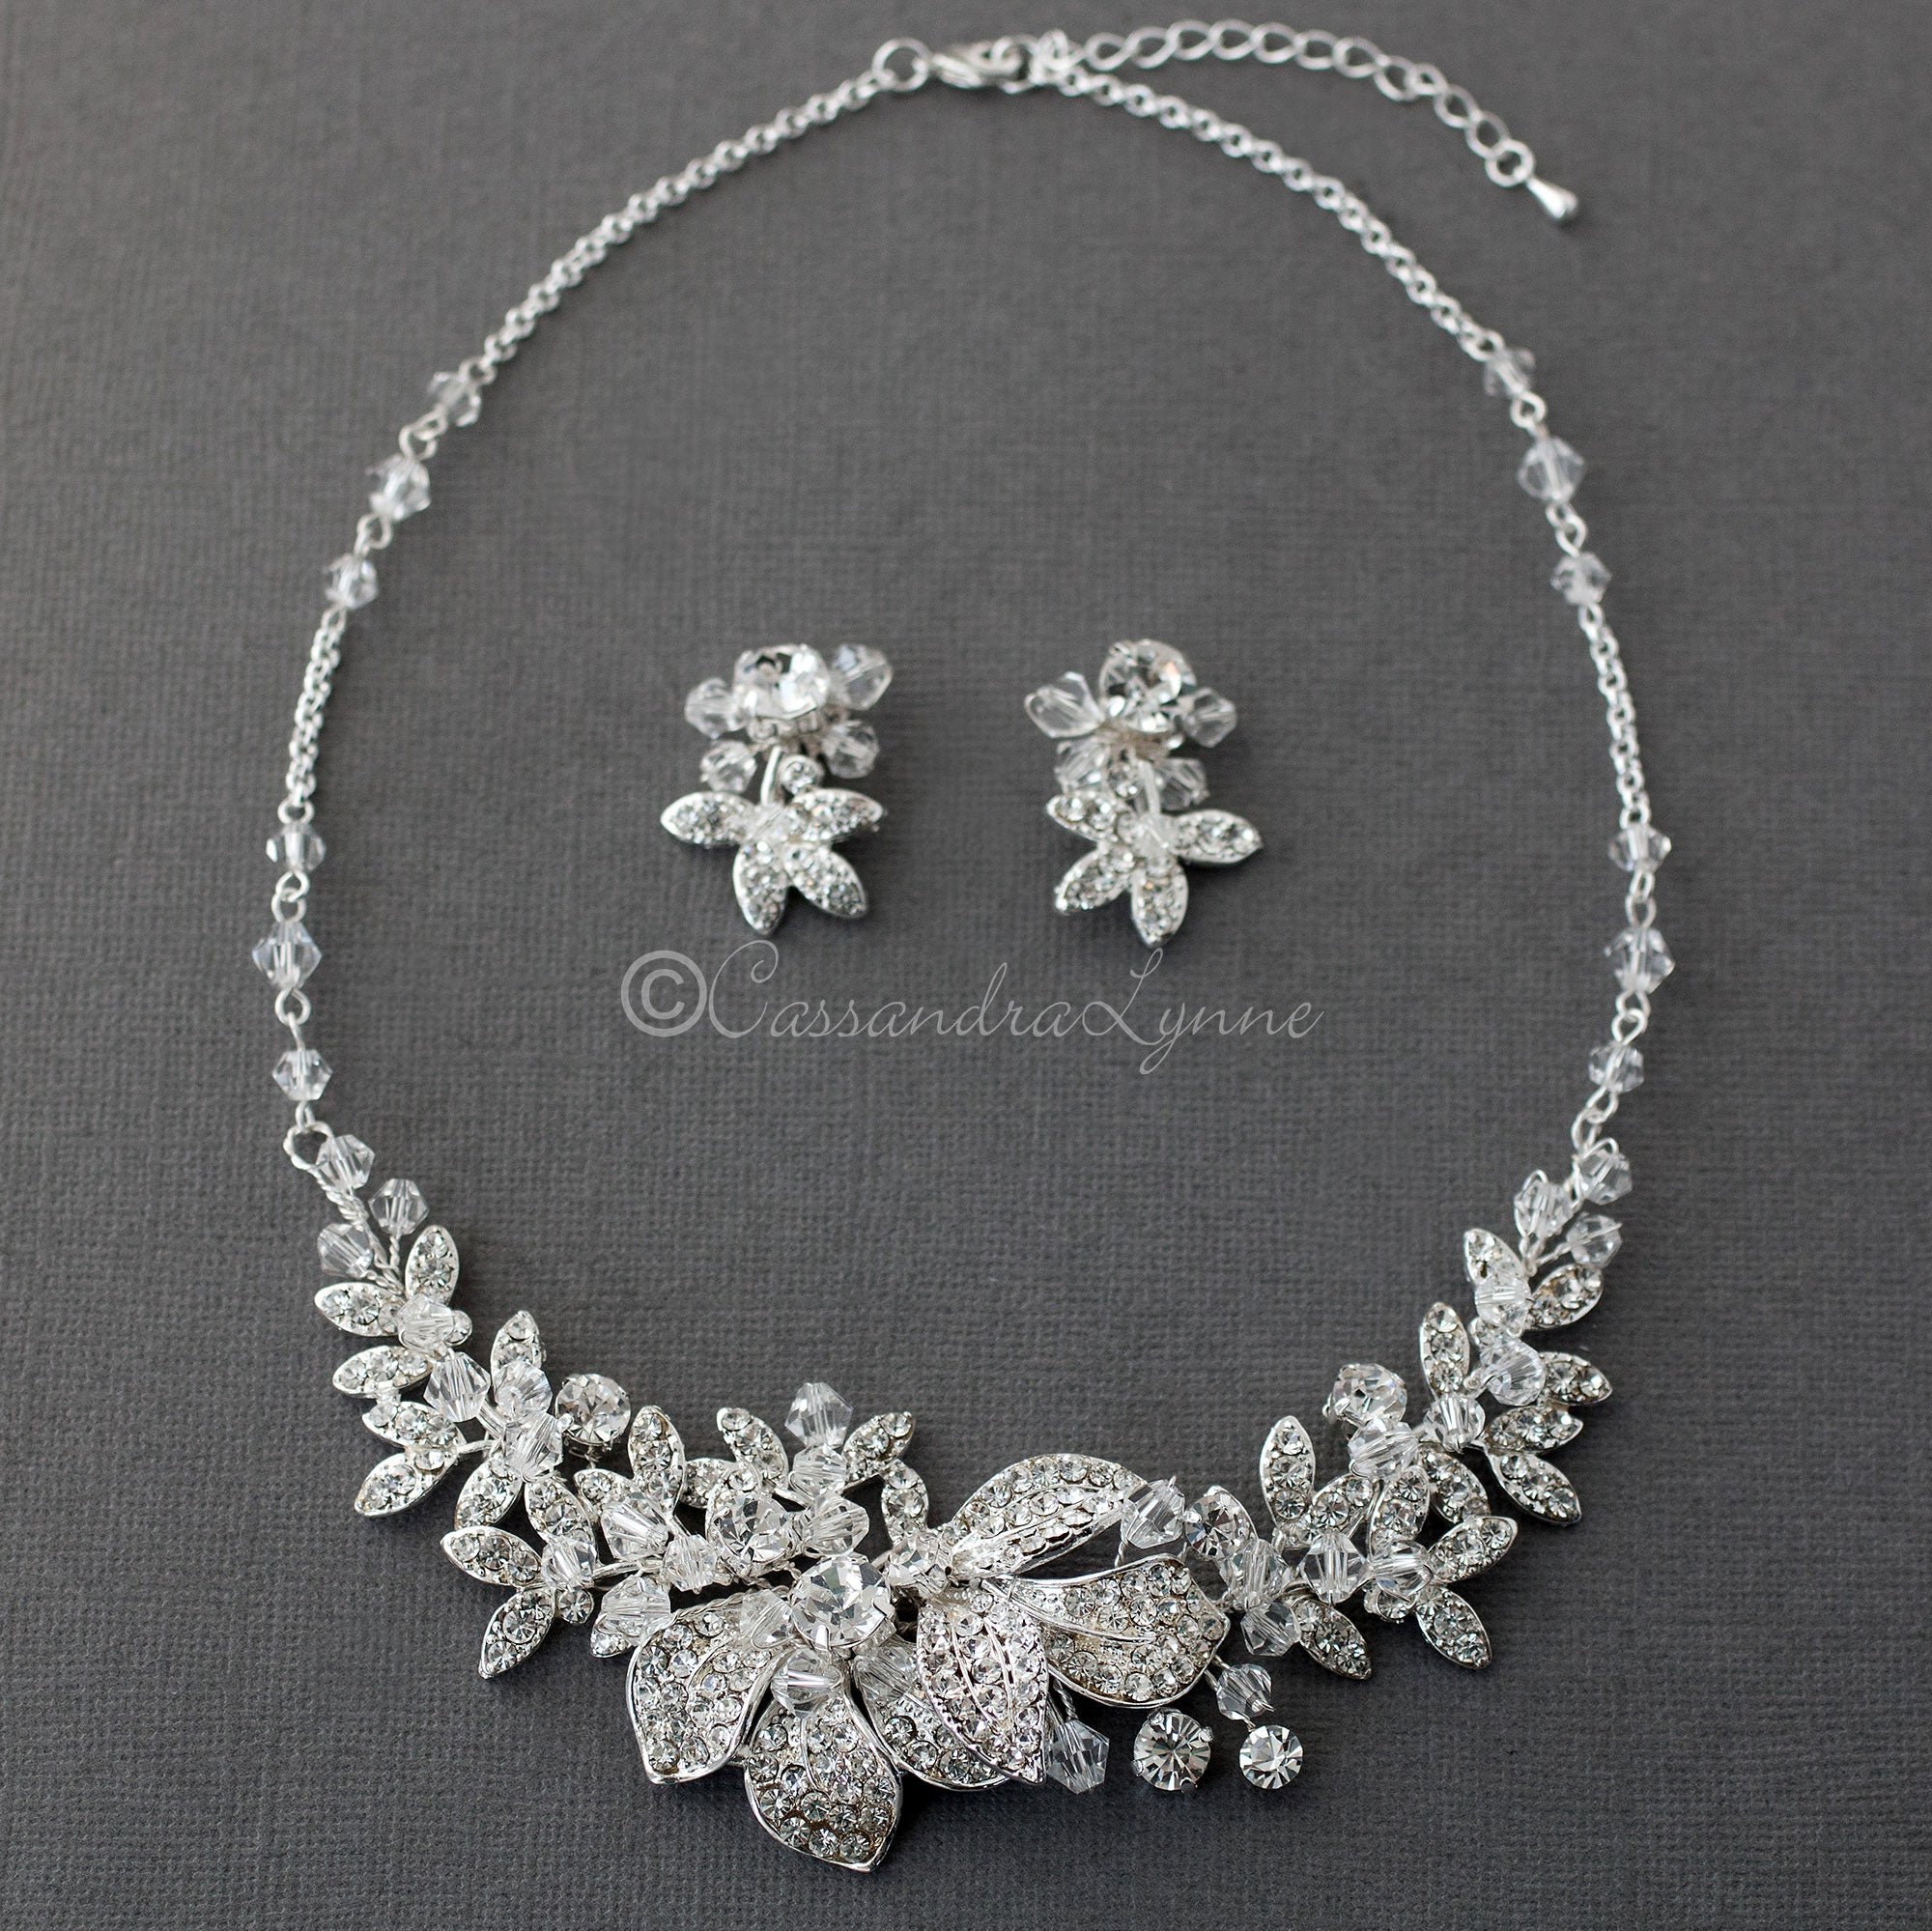 crystal vine necklace set